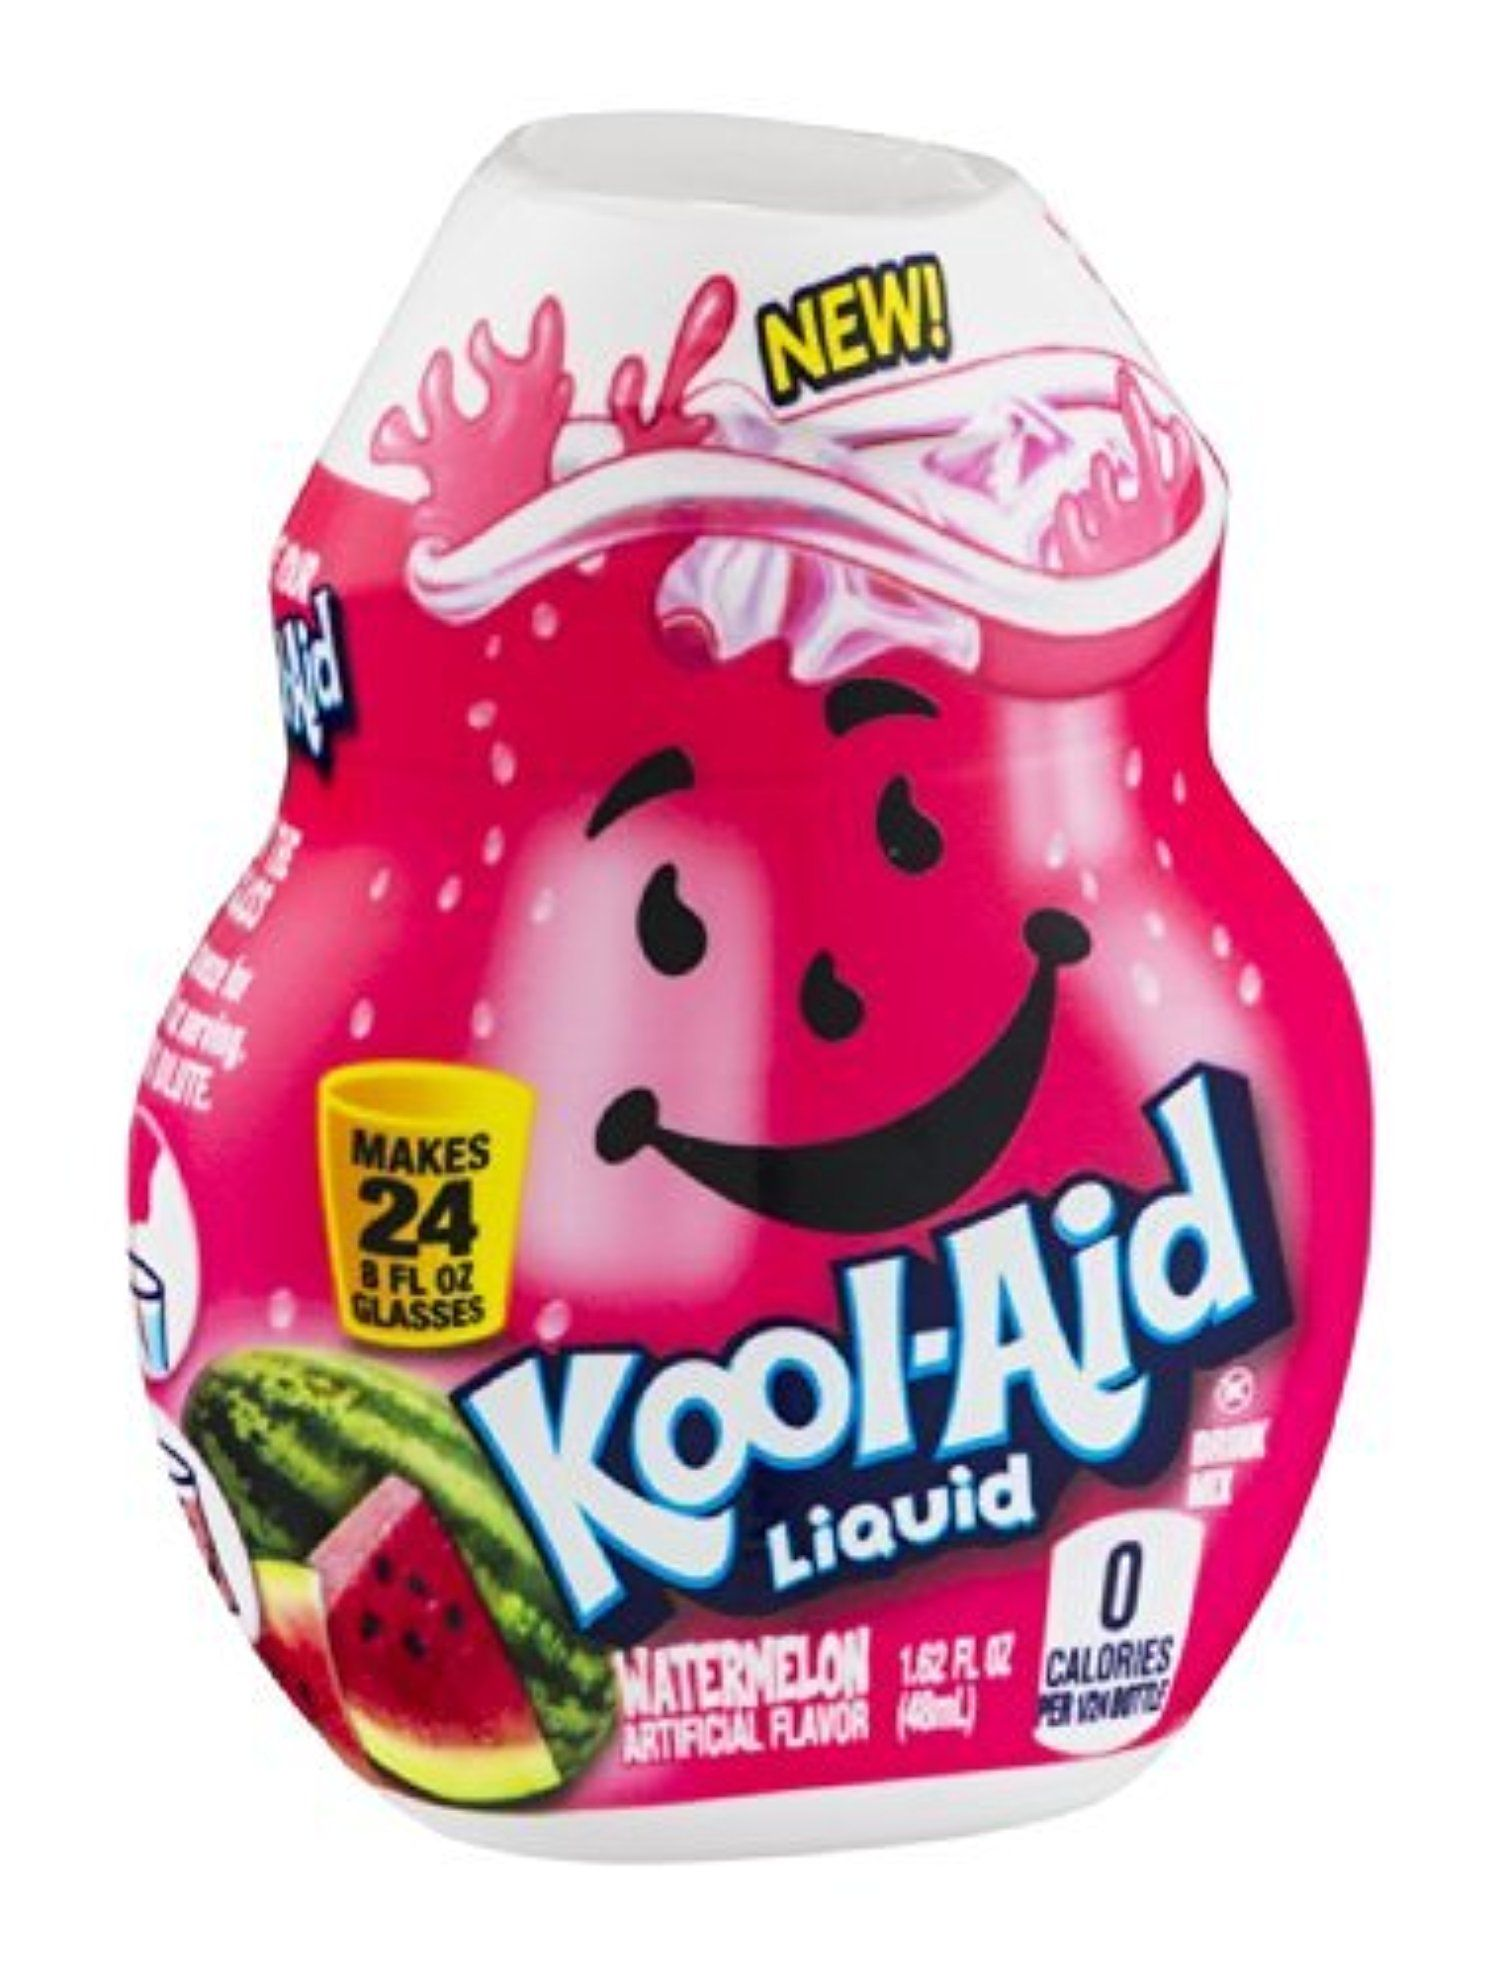 Kool Aid Liquid Drink Mix Watermelon 1 62 Oz Pack Of 24 By Kool Aid Awesome Products Selected By Anna Churchill Kool Aid Kid Drinks Mixed Drinks